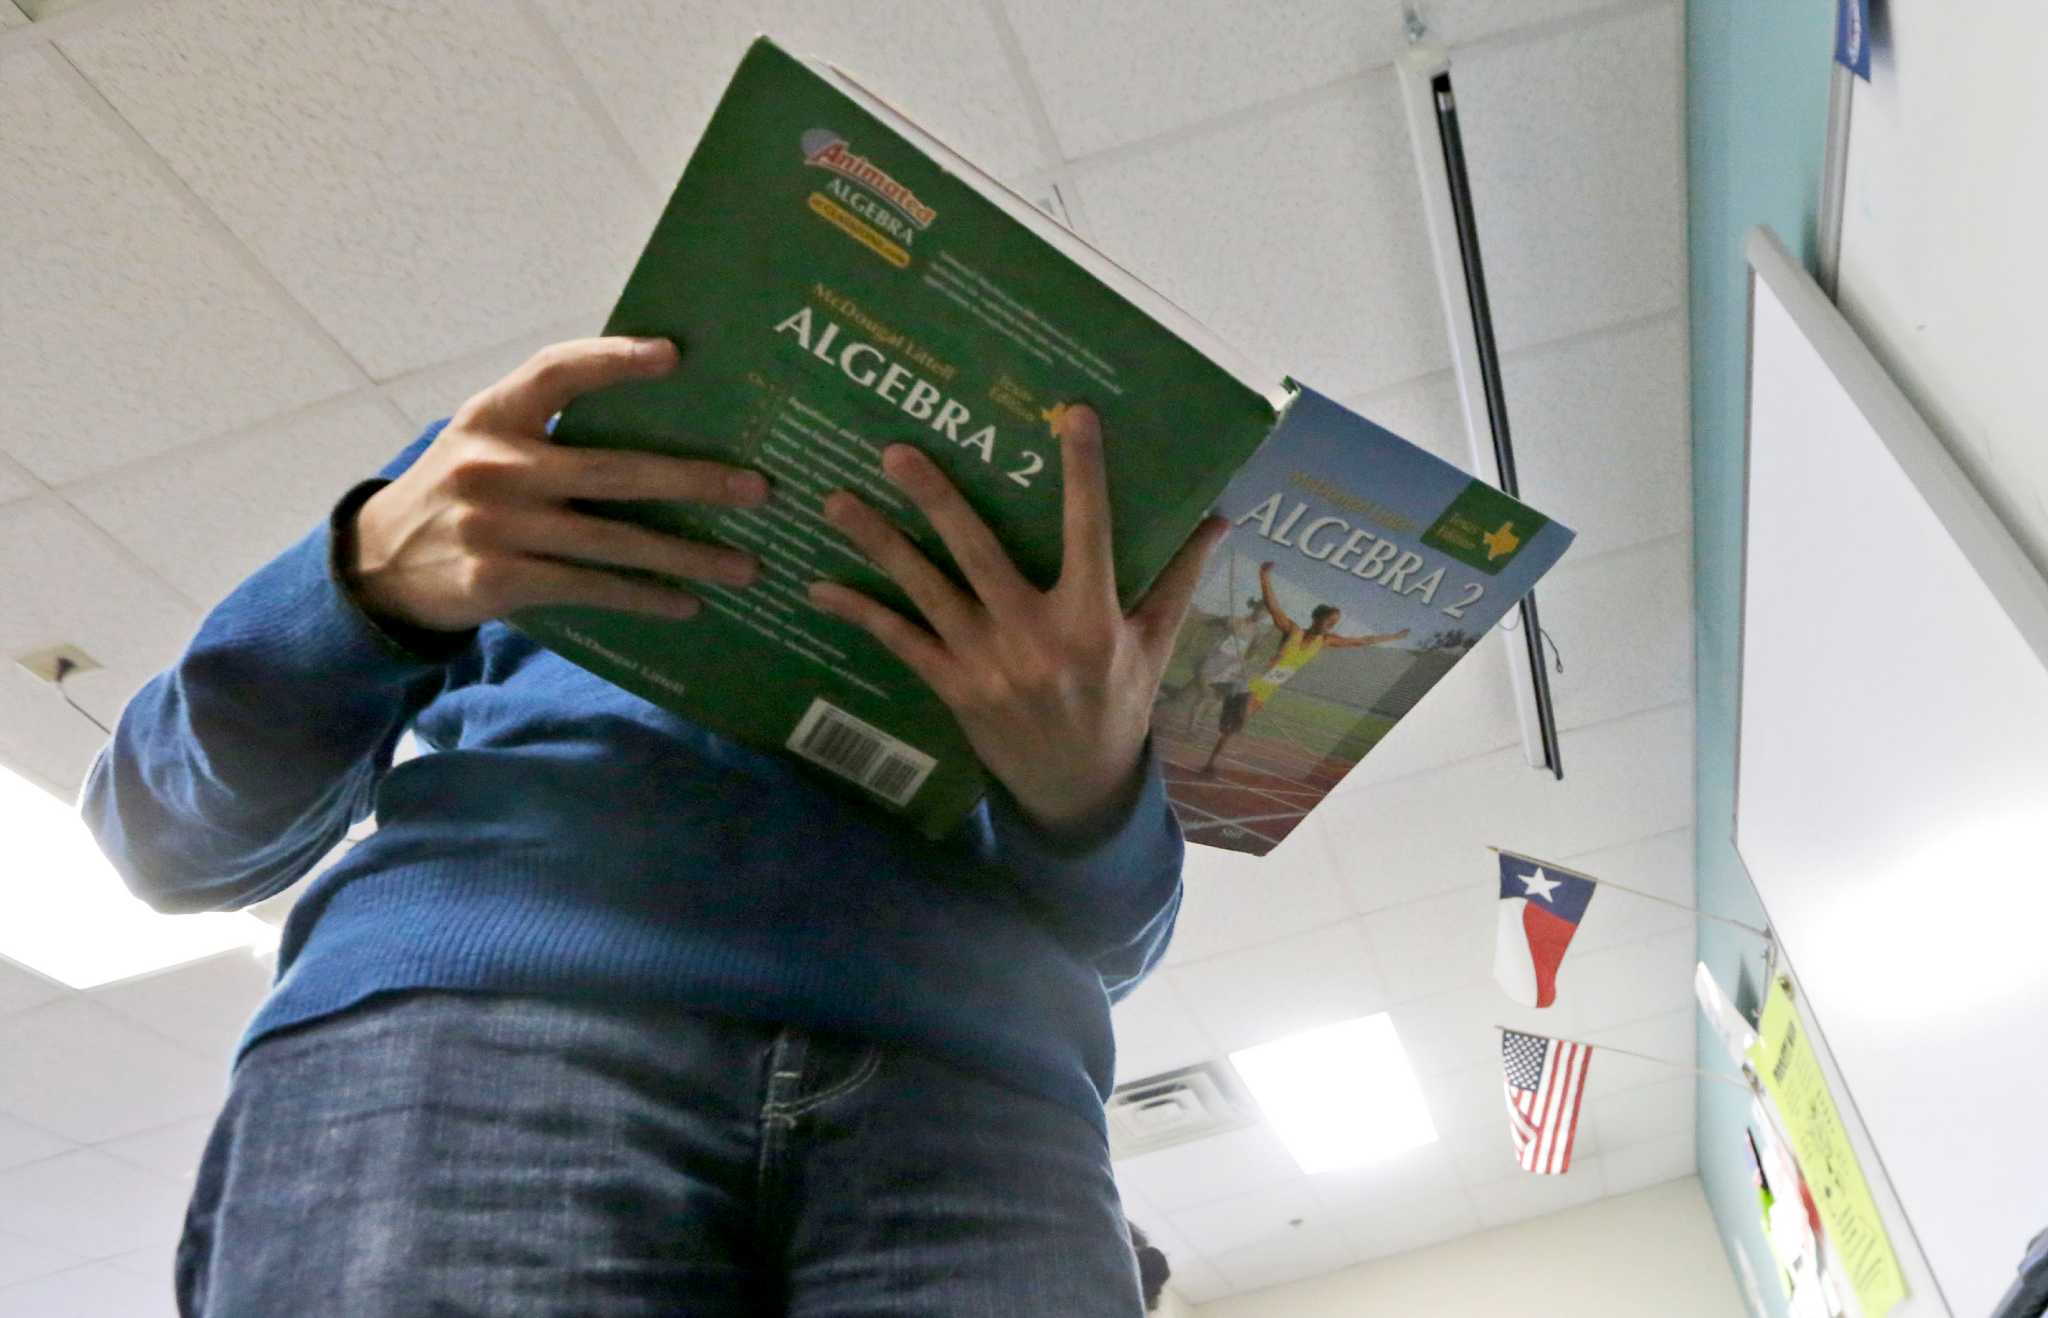 State nixes Algebra 2 for most students, offers other math